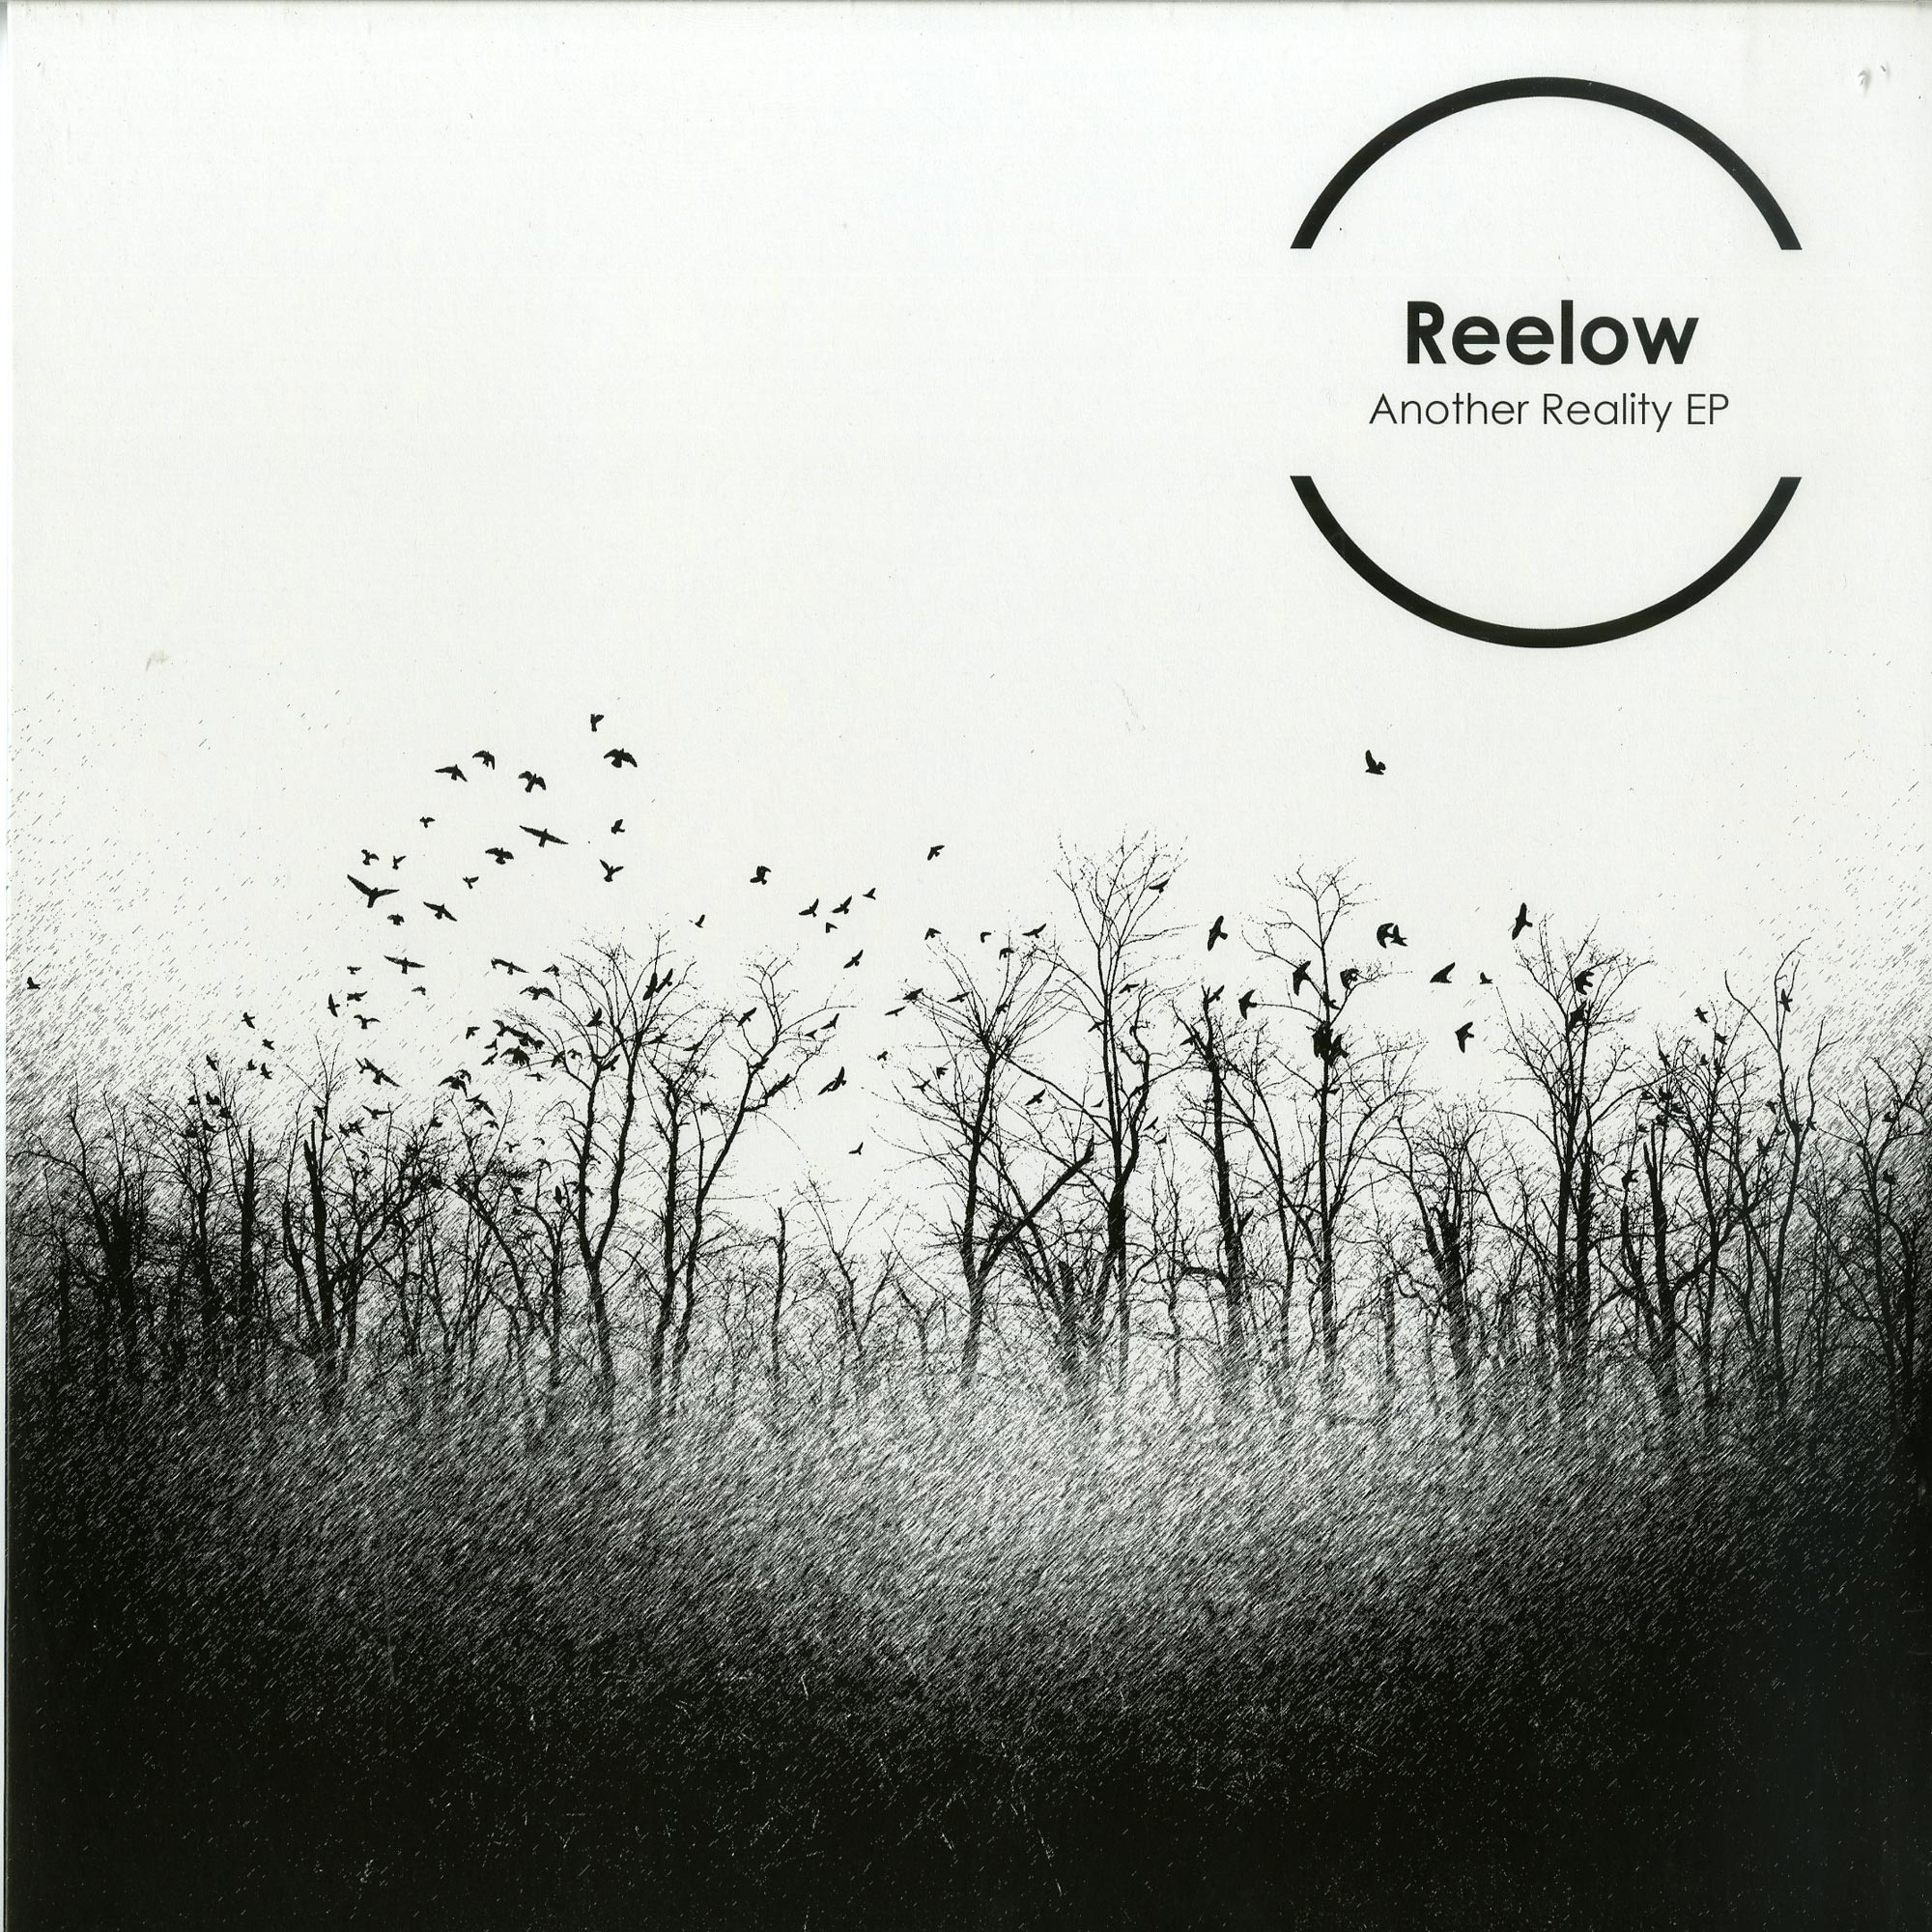 Reelow - ANOTHER REALITY EP